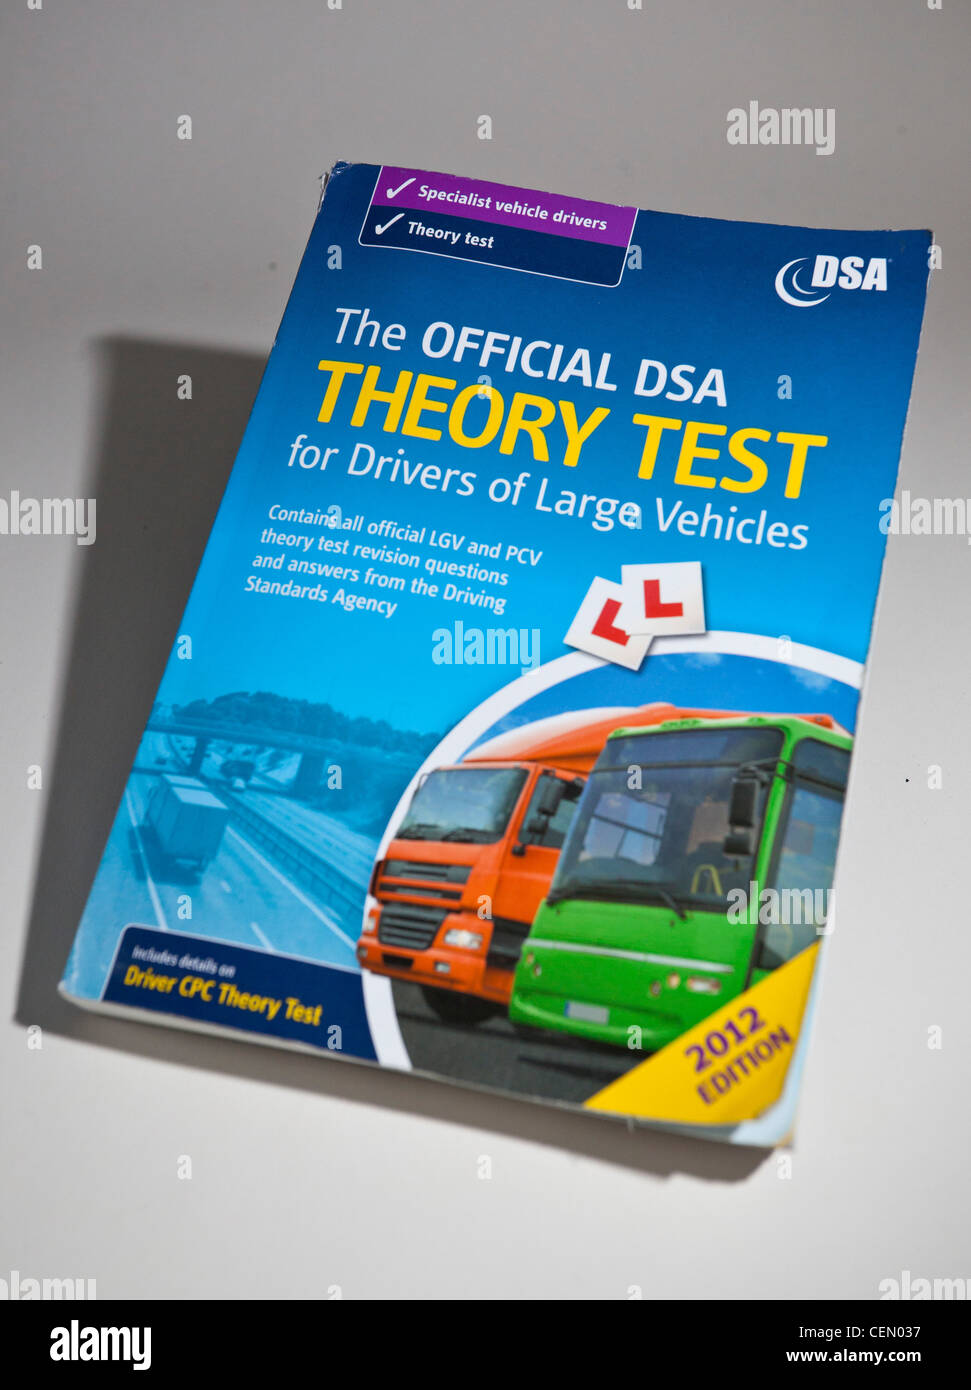 Driving theory test book - Stock Image